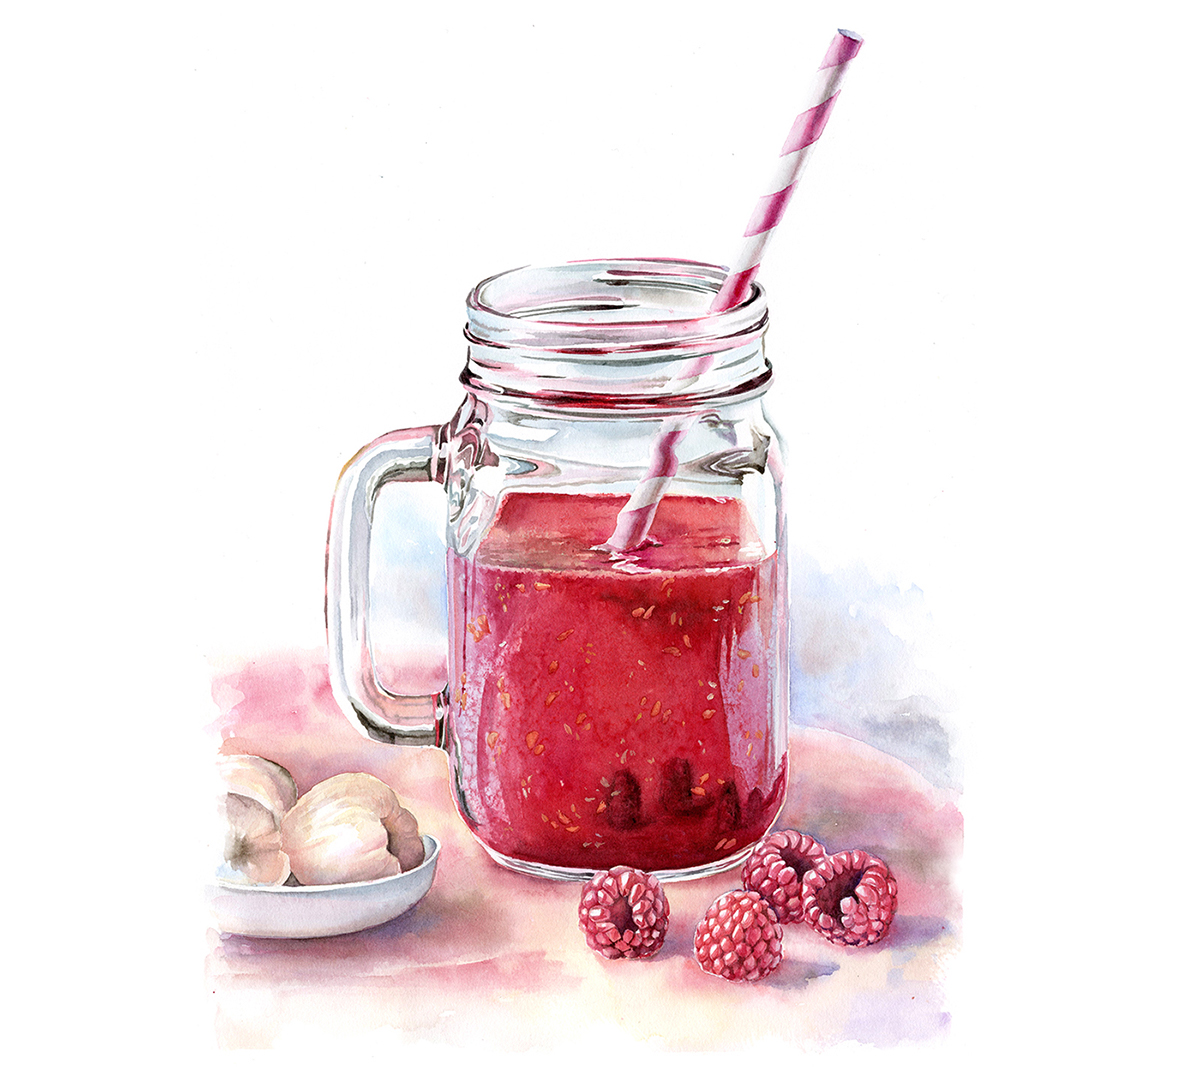 #WorldWatercolorGroup - Watercolor by Kateryna Savchenko of drink with raspberries - #doodlewash